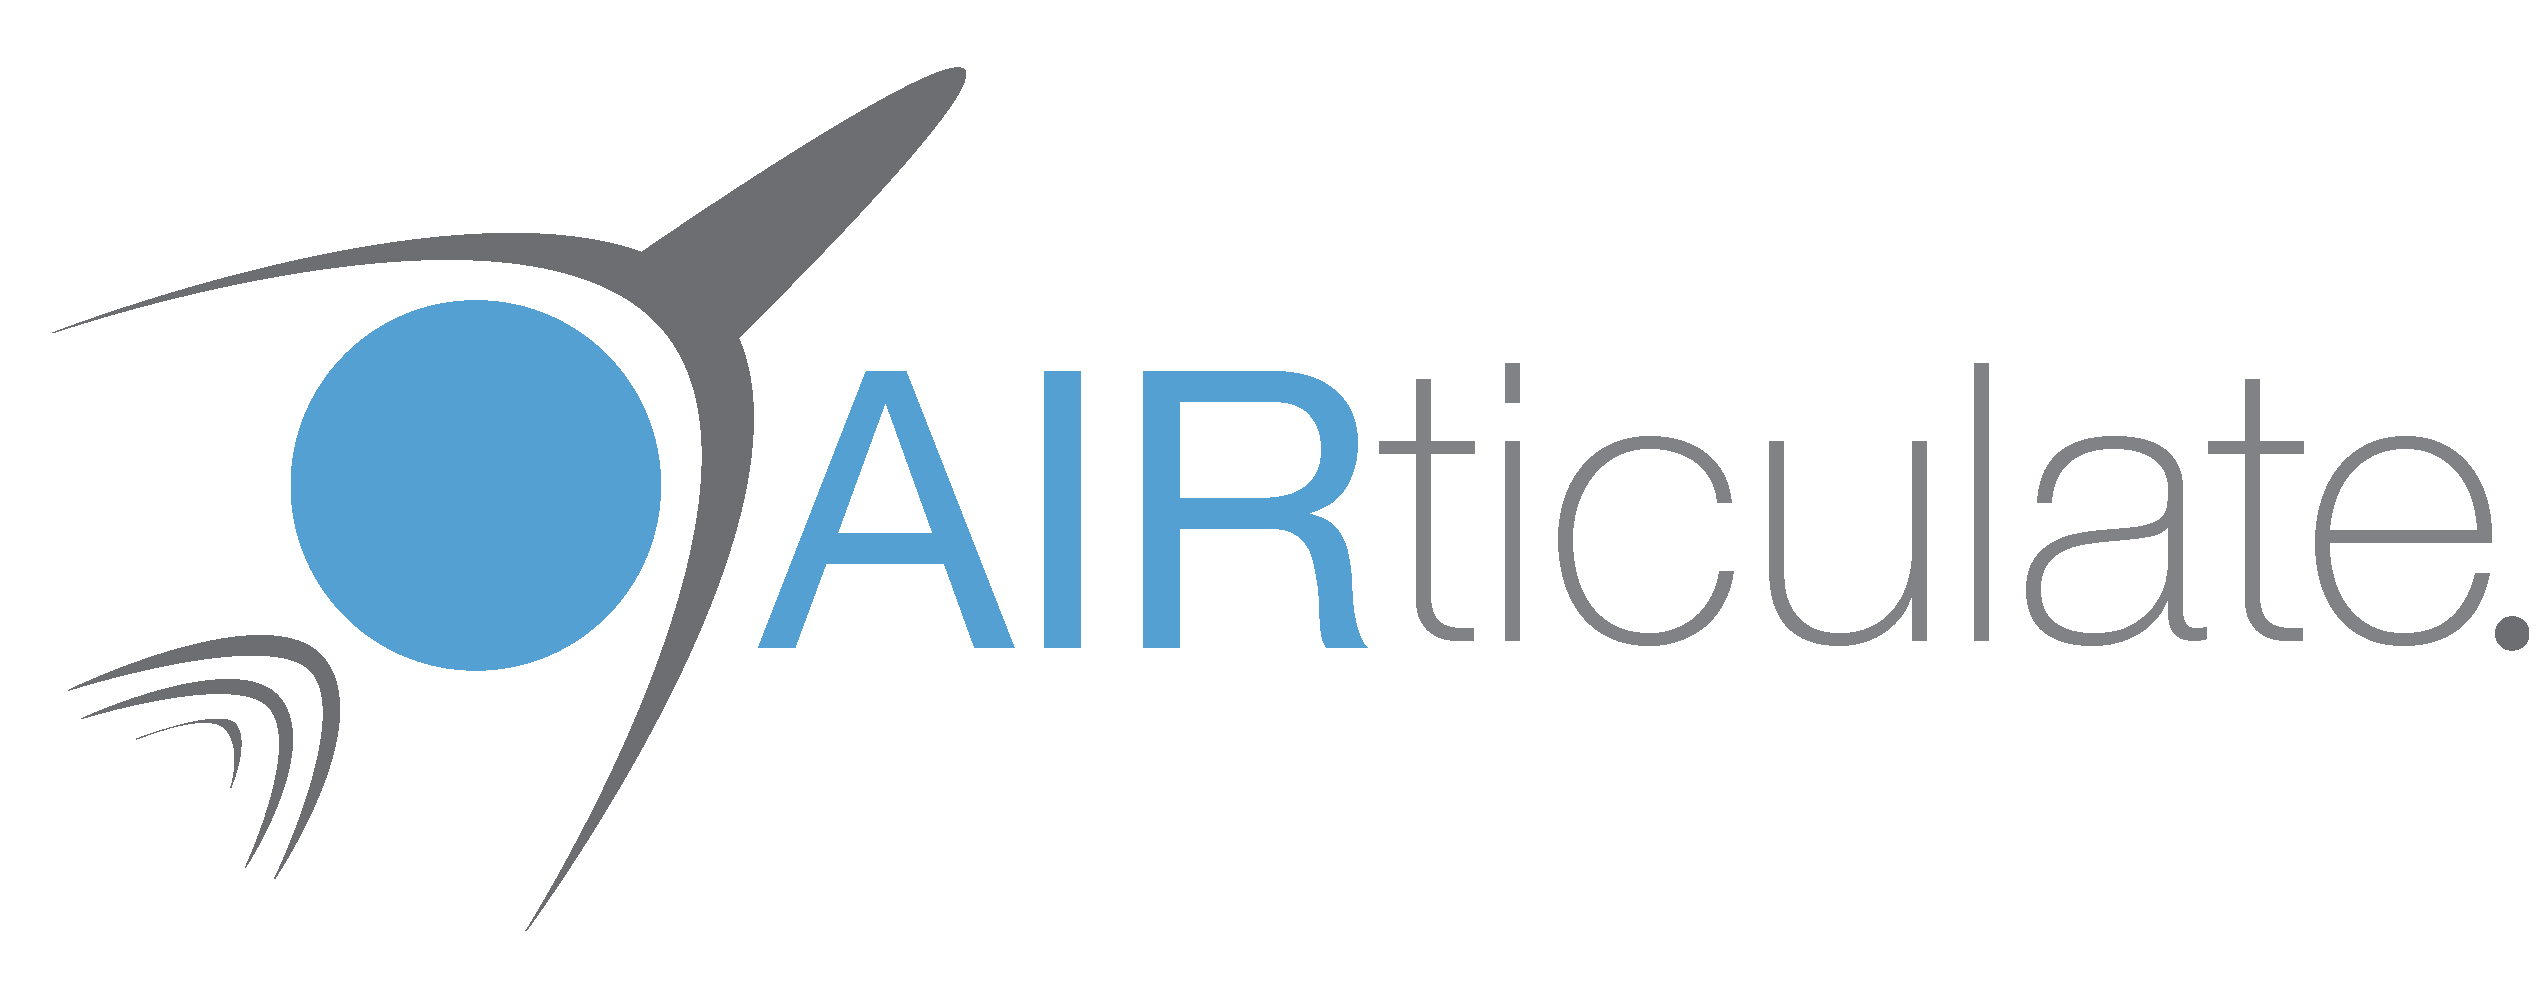 AIRticulate logo design